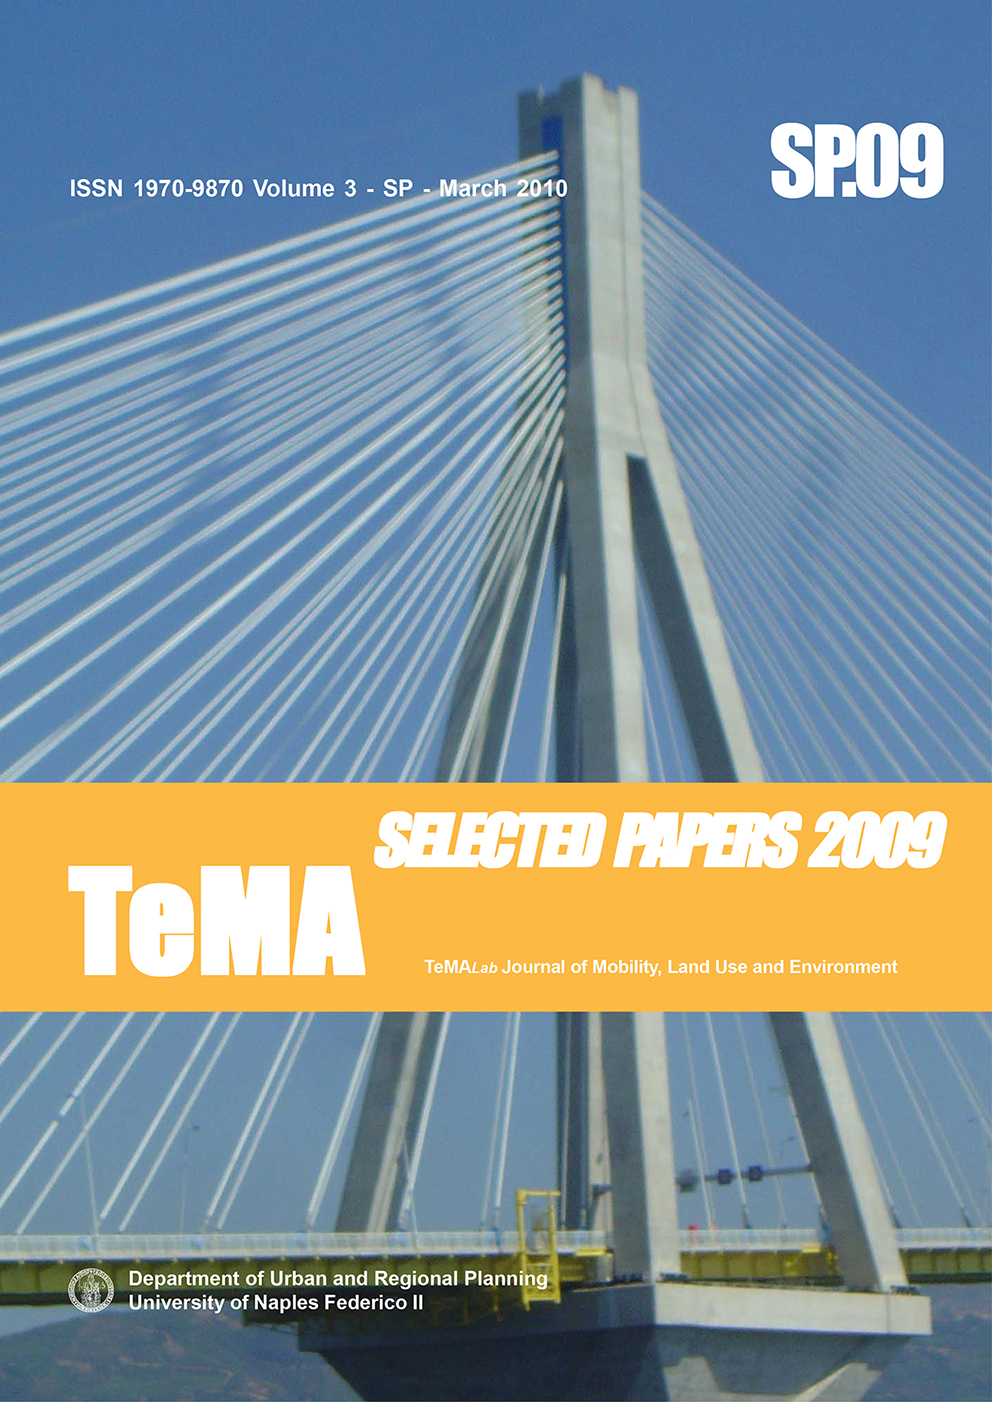 09_Vol 2 (2009): Selected Papers 2009